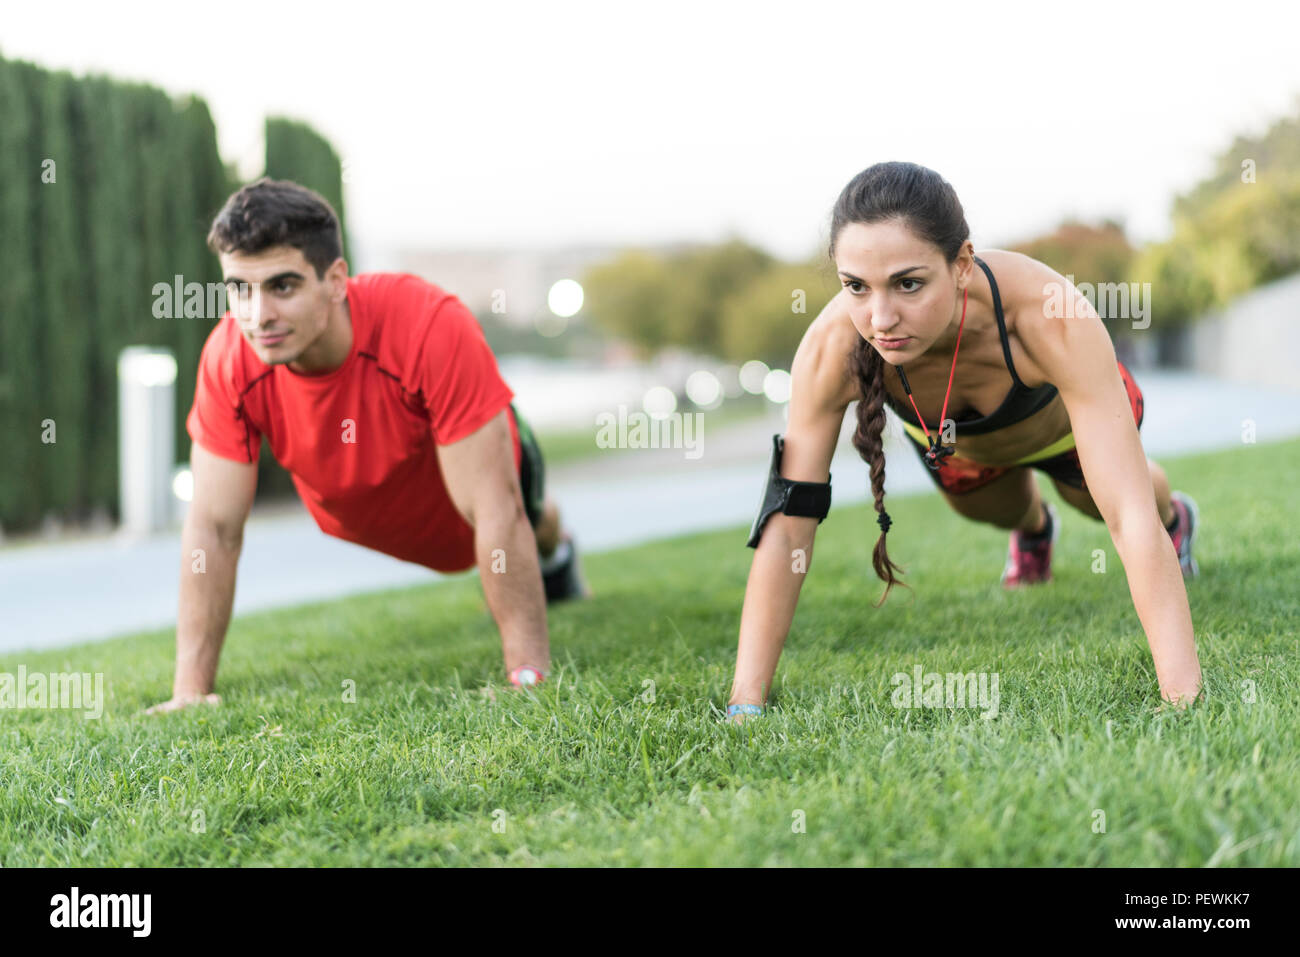 Coupe training push ups exercises in city park at night - Stock Image